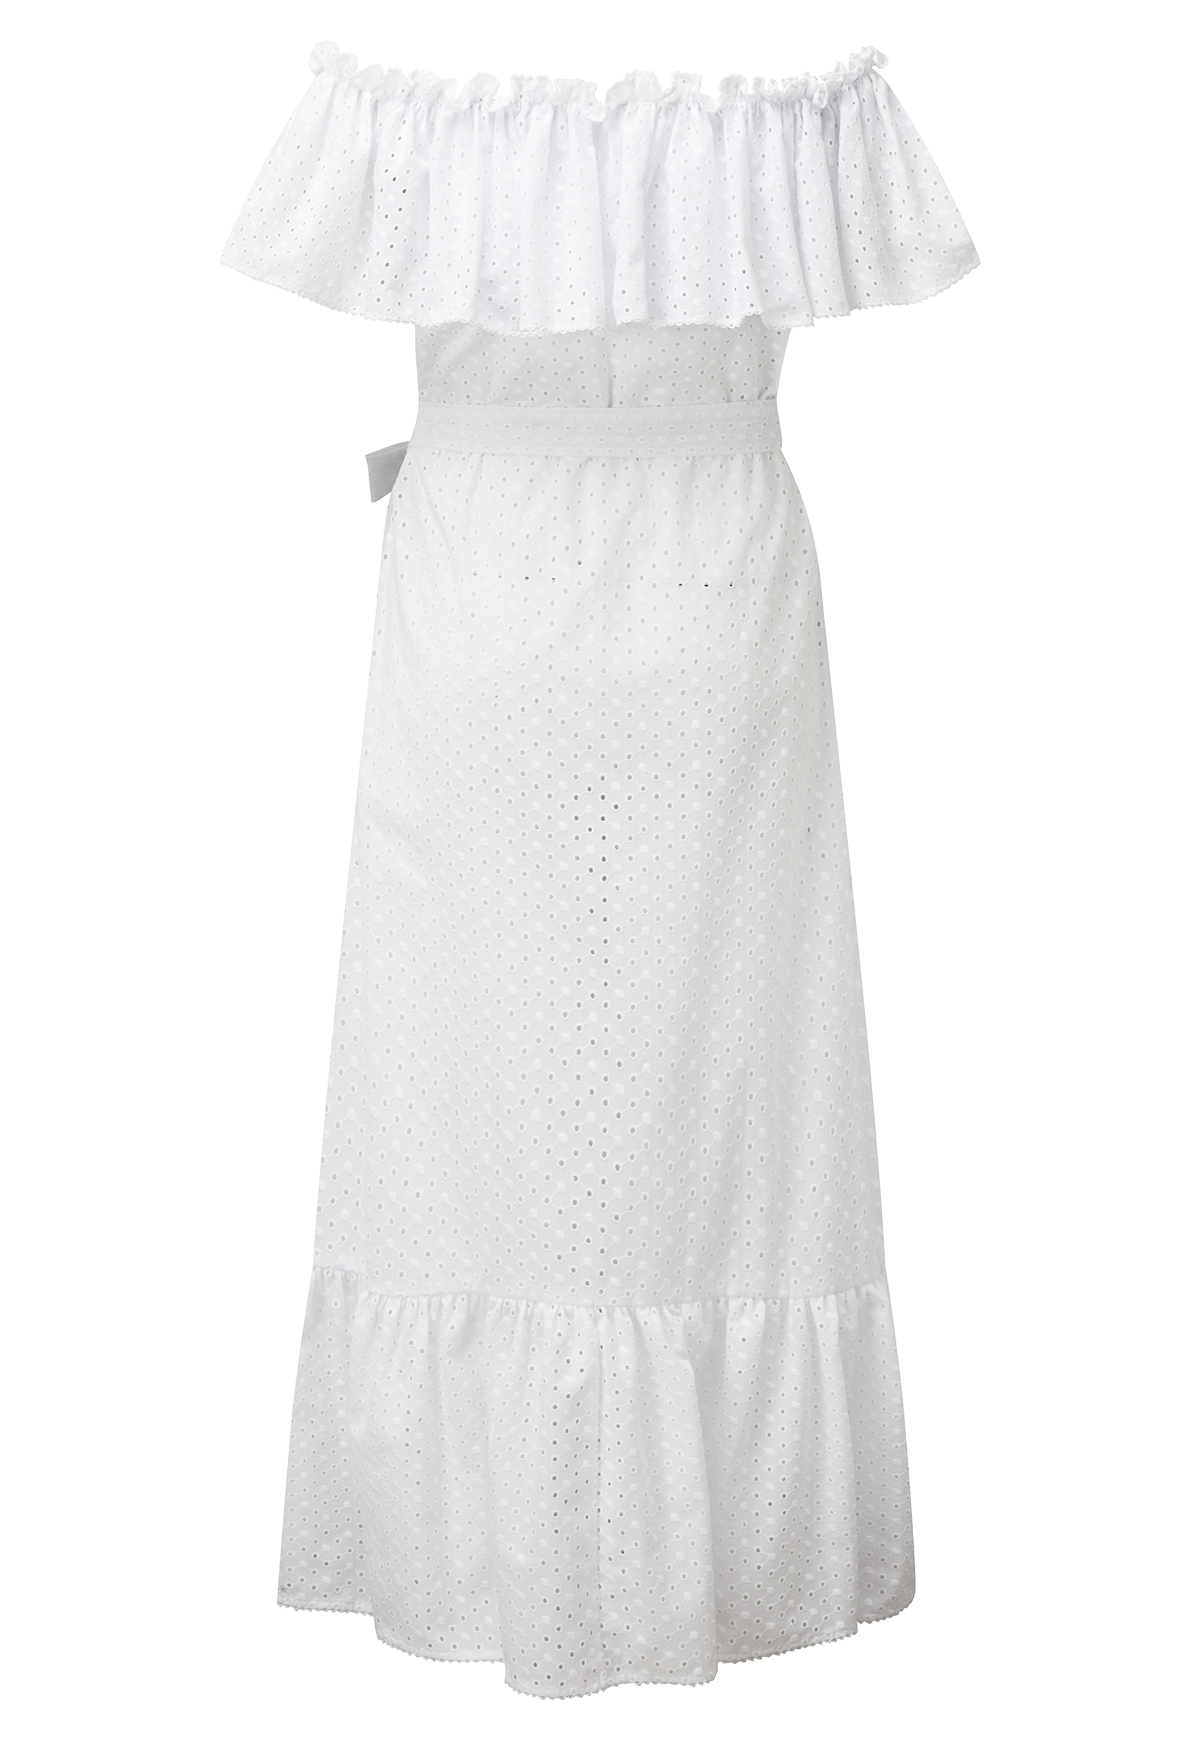 MIRA WHITE EYELET BUTTON DOWN DRESS